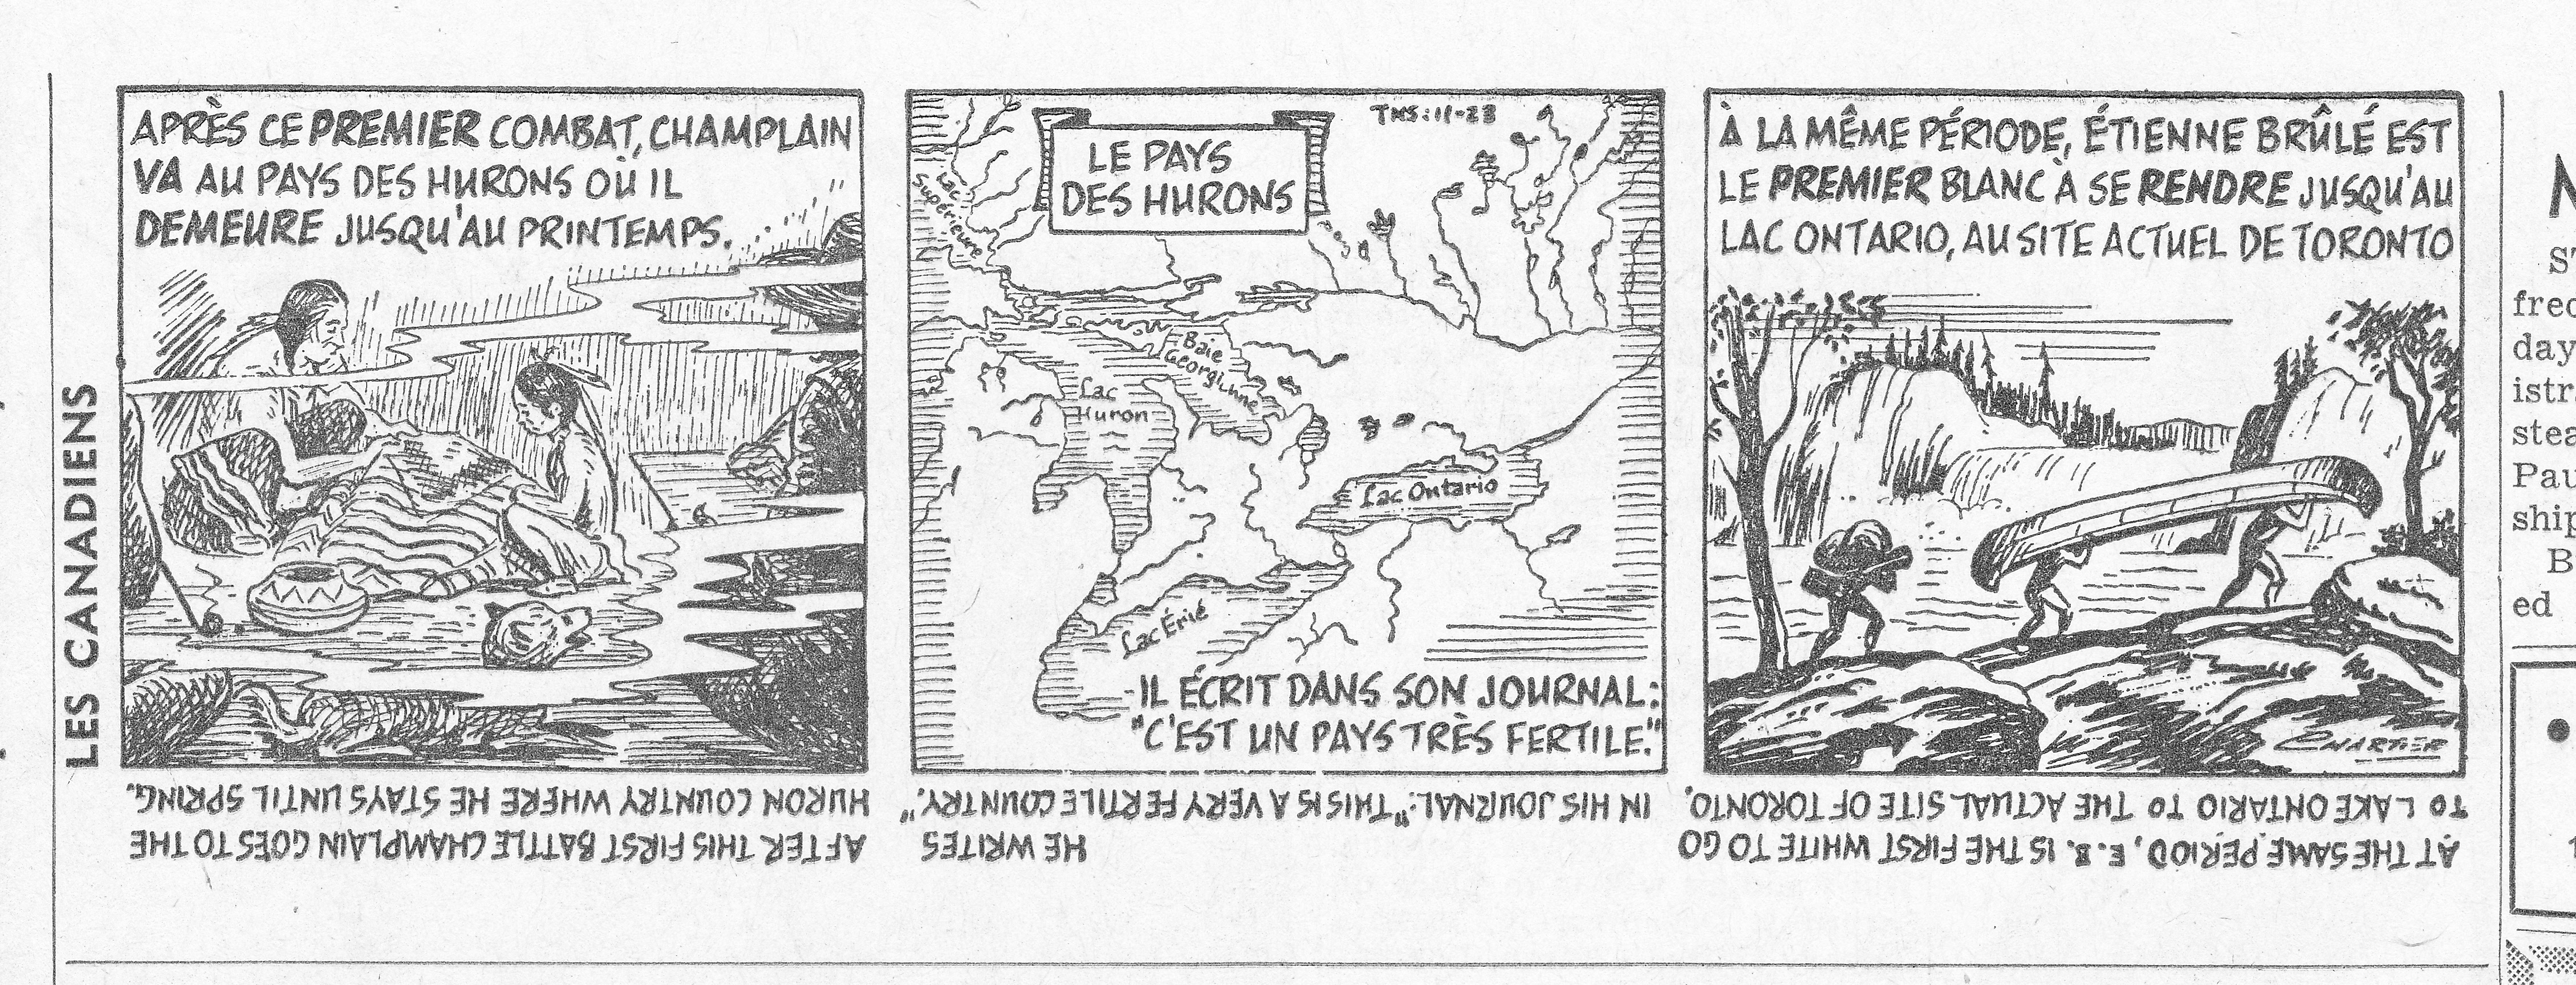 LES CANADIENS, London Free Press ,23 Nov